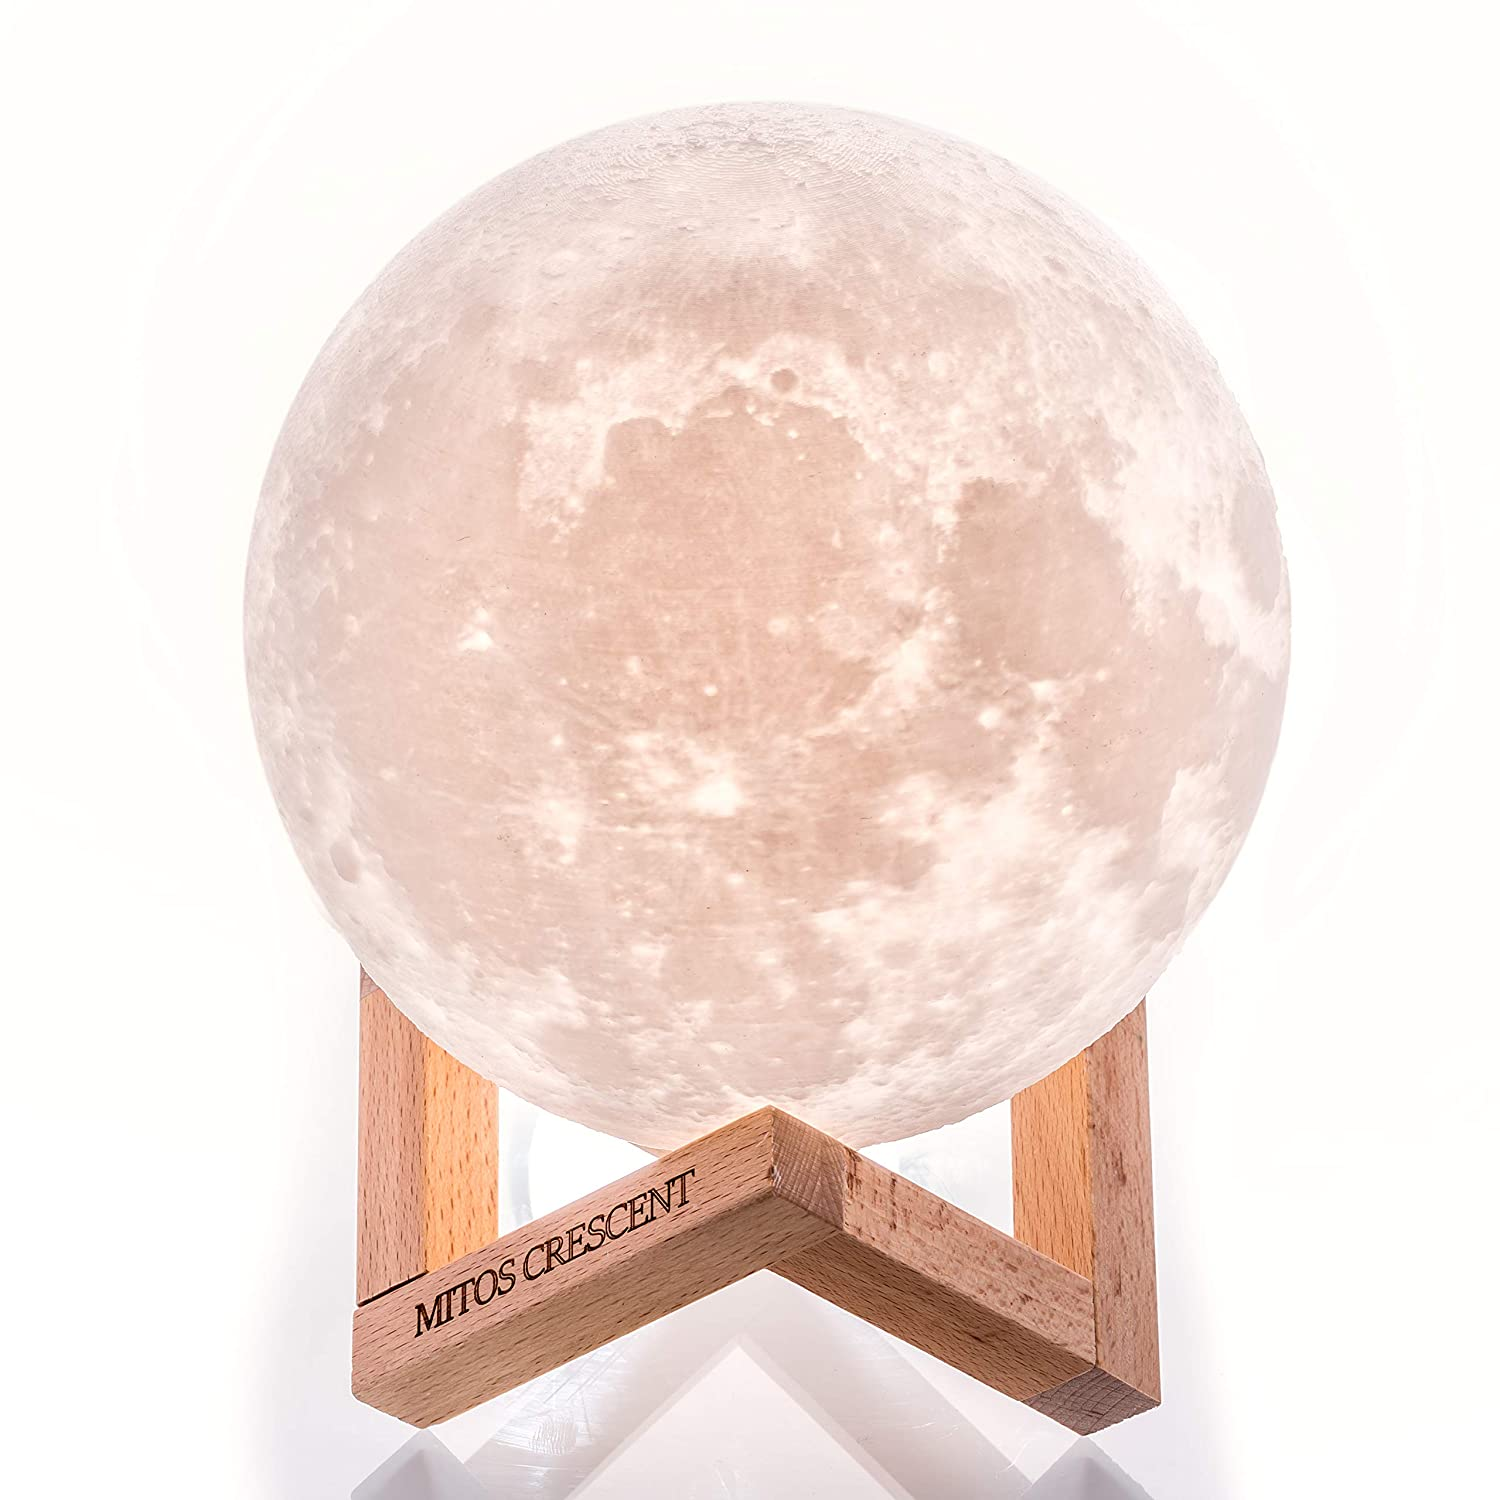 These Magnificent Moon Lanterns Will Light Up Your Home Like Never Before These Magnificent Moon Lanterns Will Light Up Your Home Like Never Before new images